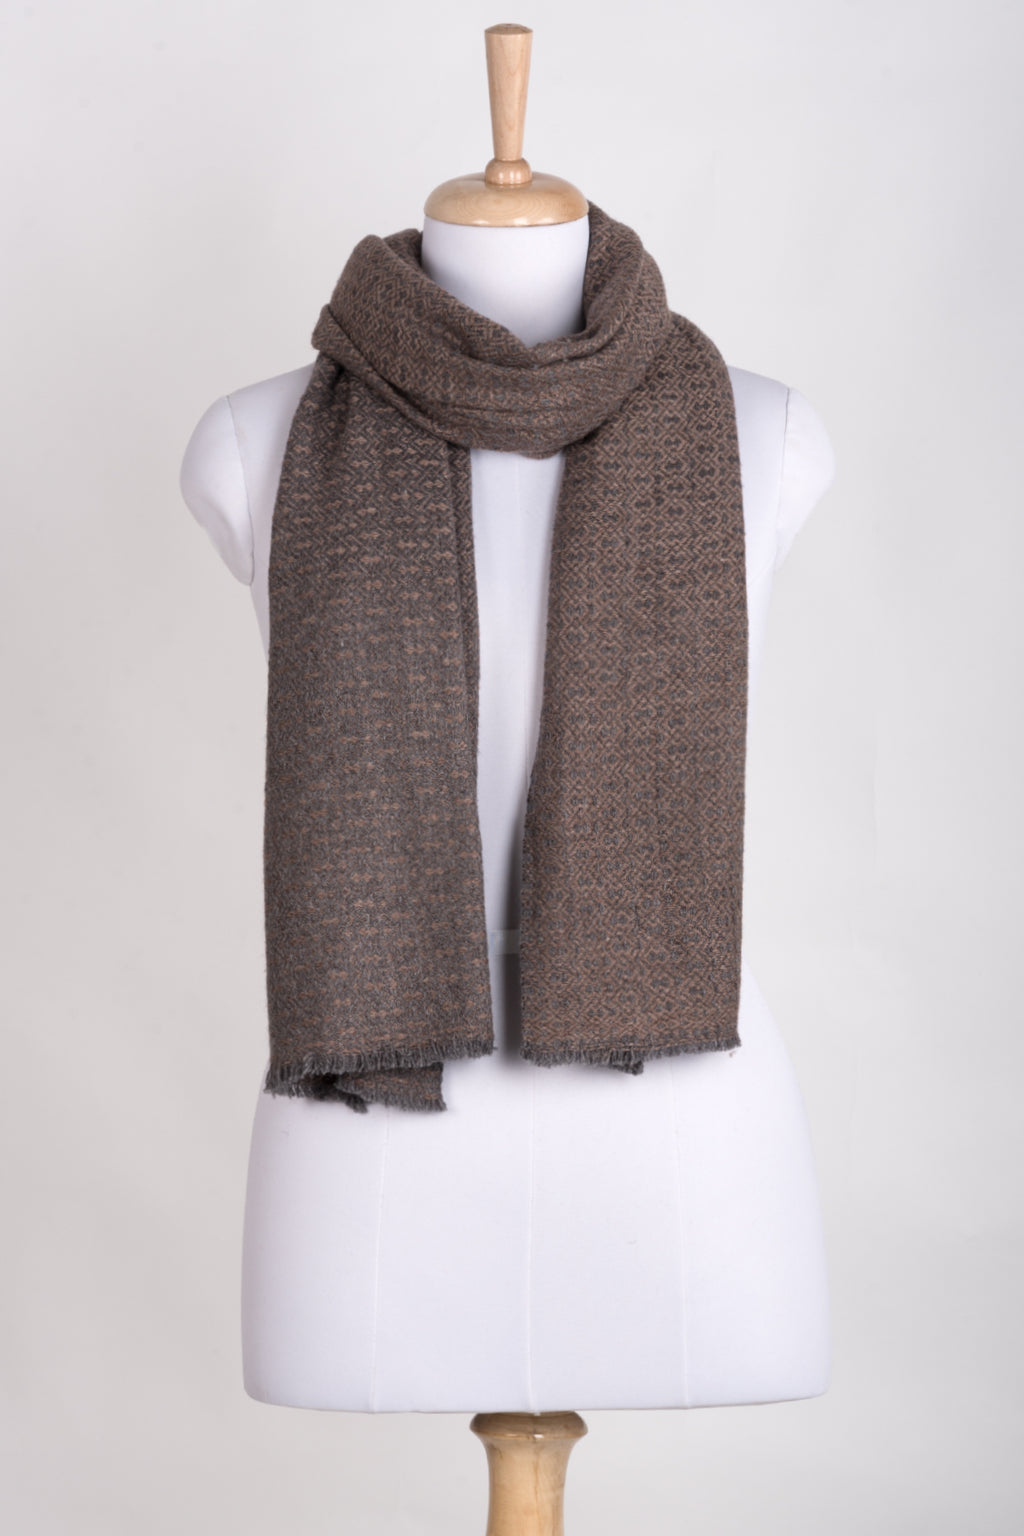 Novelty Diamond Weave Cashmere Wool Scarf - Grey Rose Pink